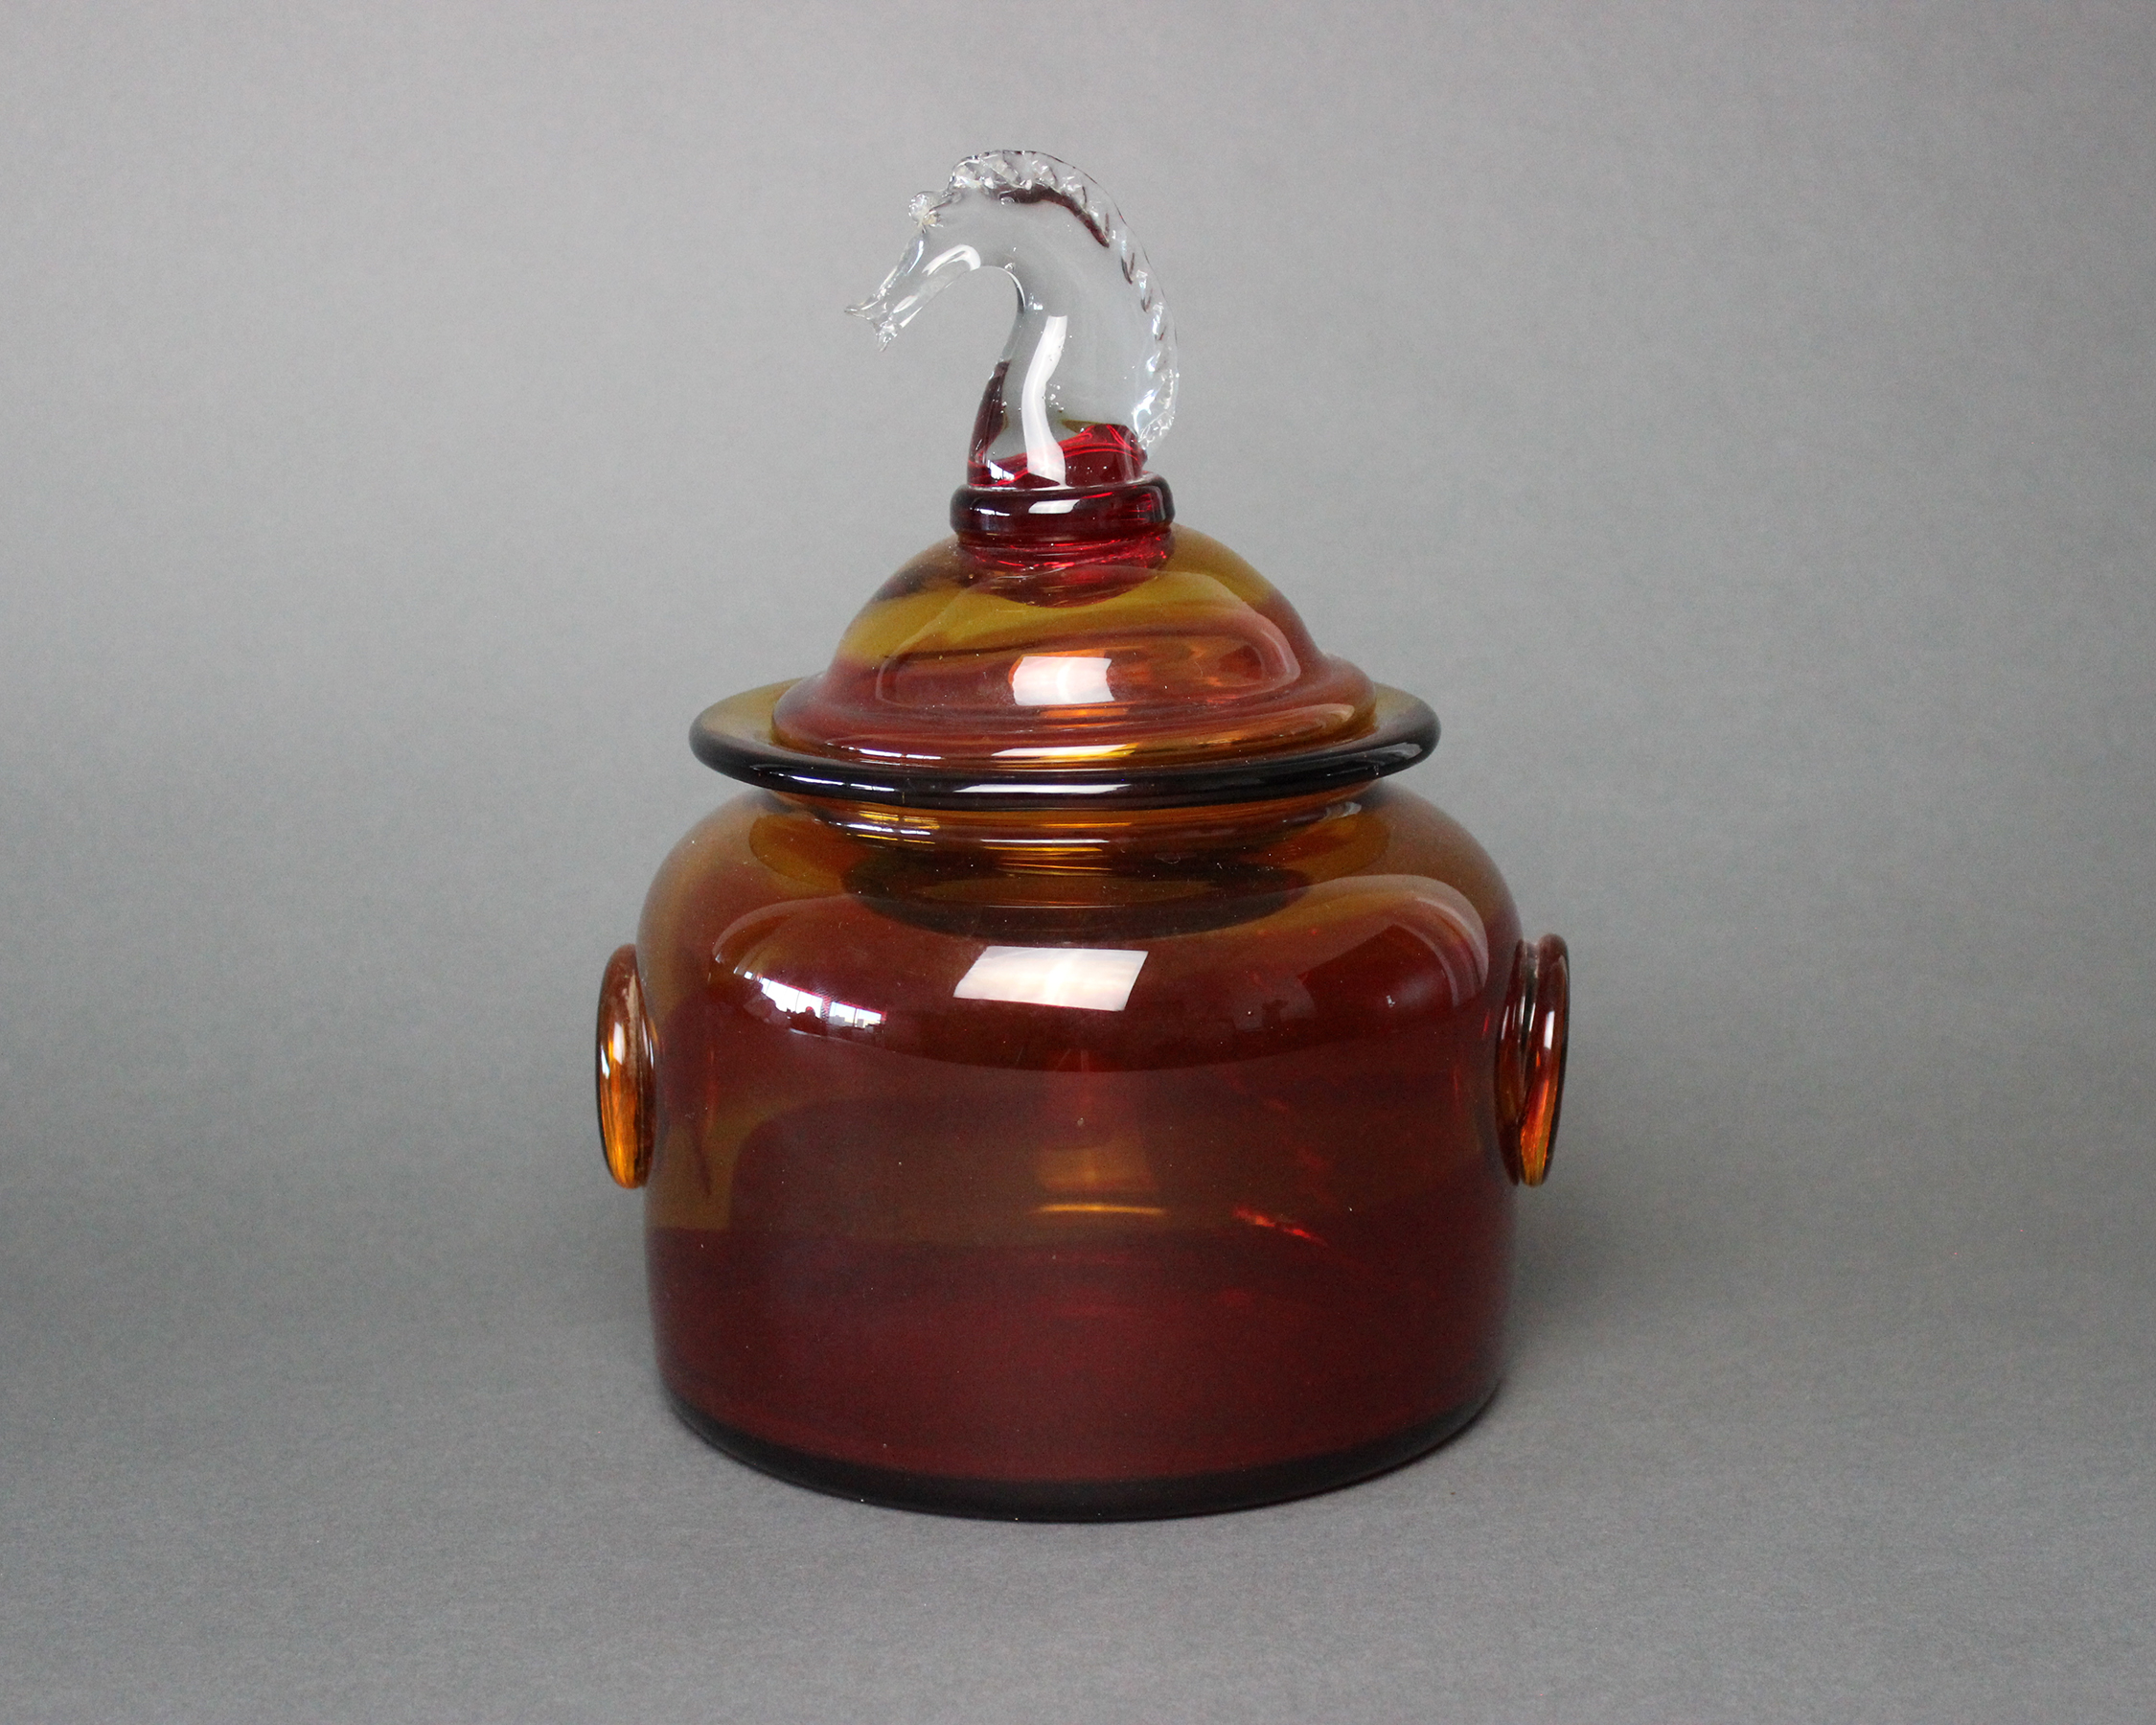 Blenko Cracker Jar - Will Prindle Collection